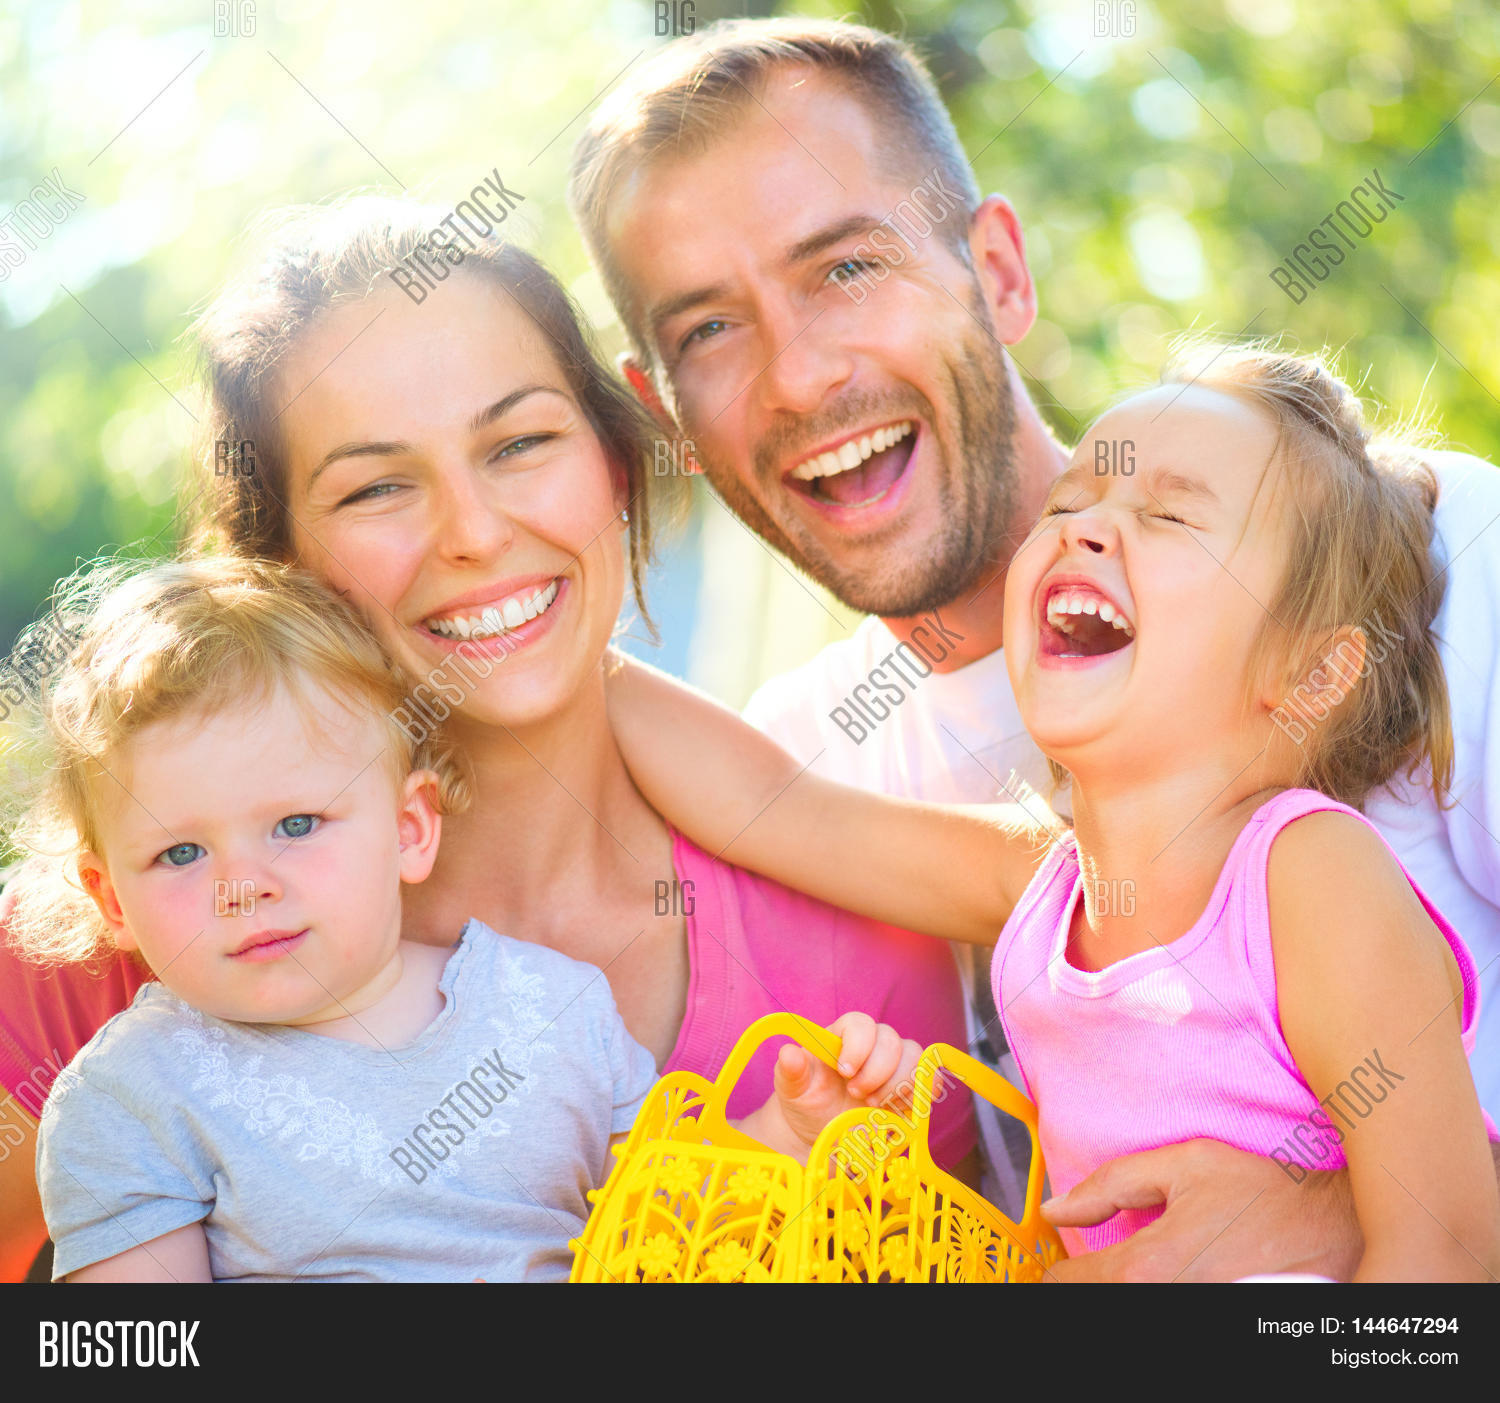 Happy Joyful Young Family Children Image & Photo   Bigstock: http://www.bigstockphoto.com/image-144647294/stock-photo-happy-joyful-young-family-with-children-father%2C-mother-and-little-kids-having-fun-outdoors-in-orchard-garden%2C-playing-together-in-summer-park-mom%2C-dad%2C-kids-laughing-and-hugging%2C-enjoying-nature